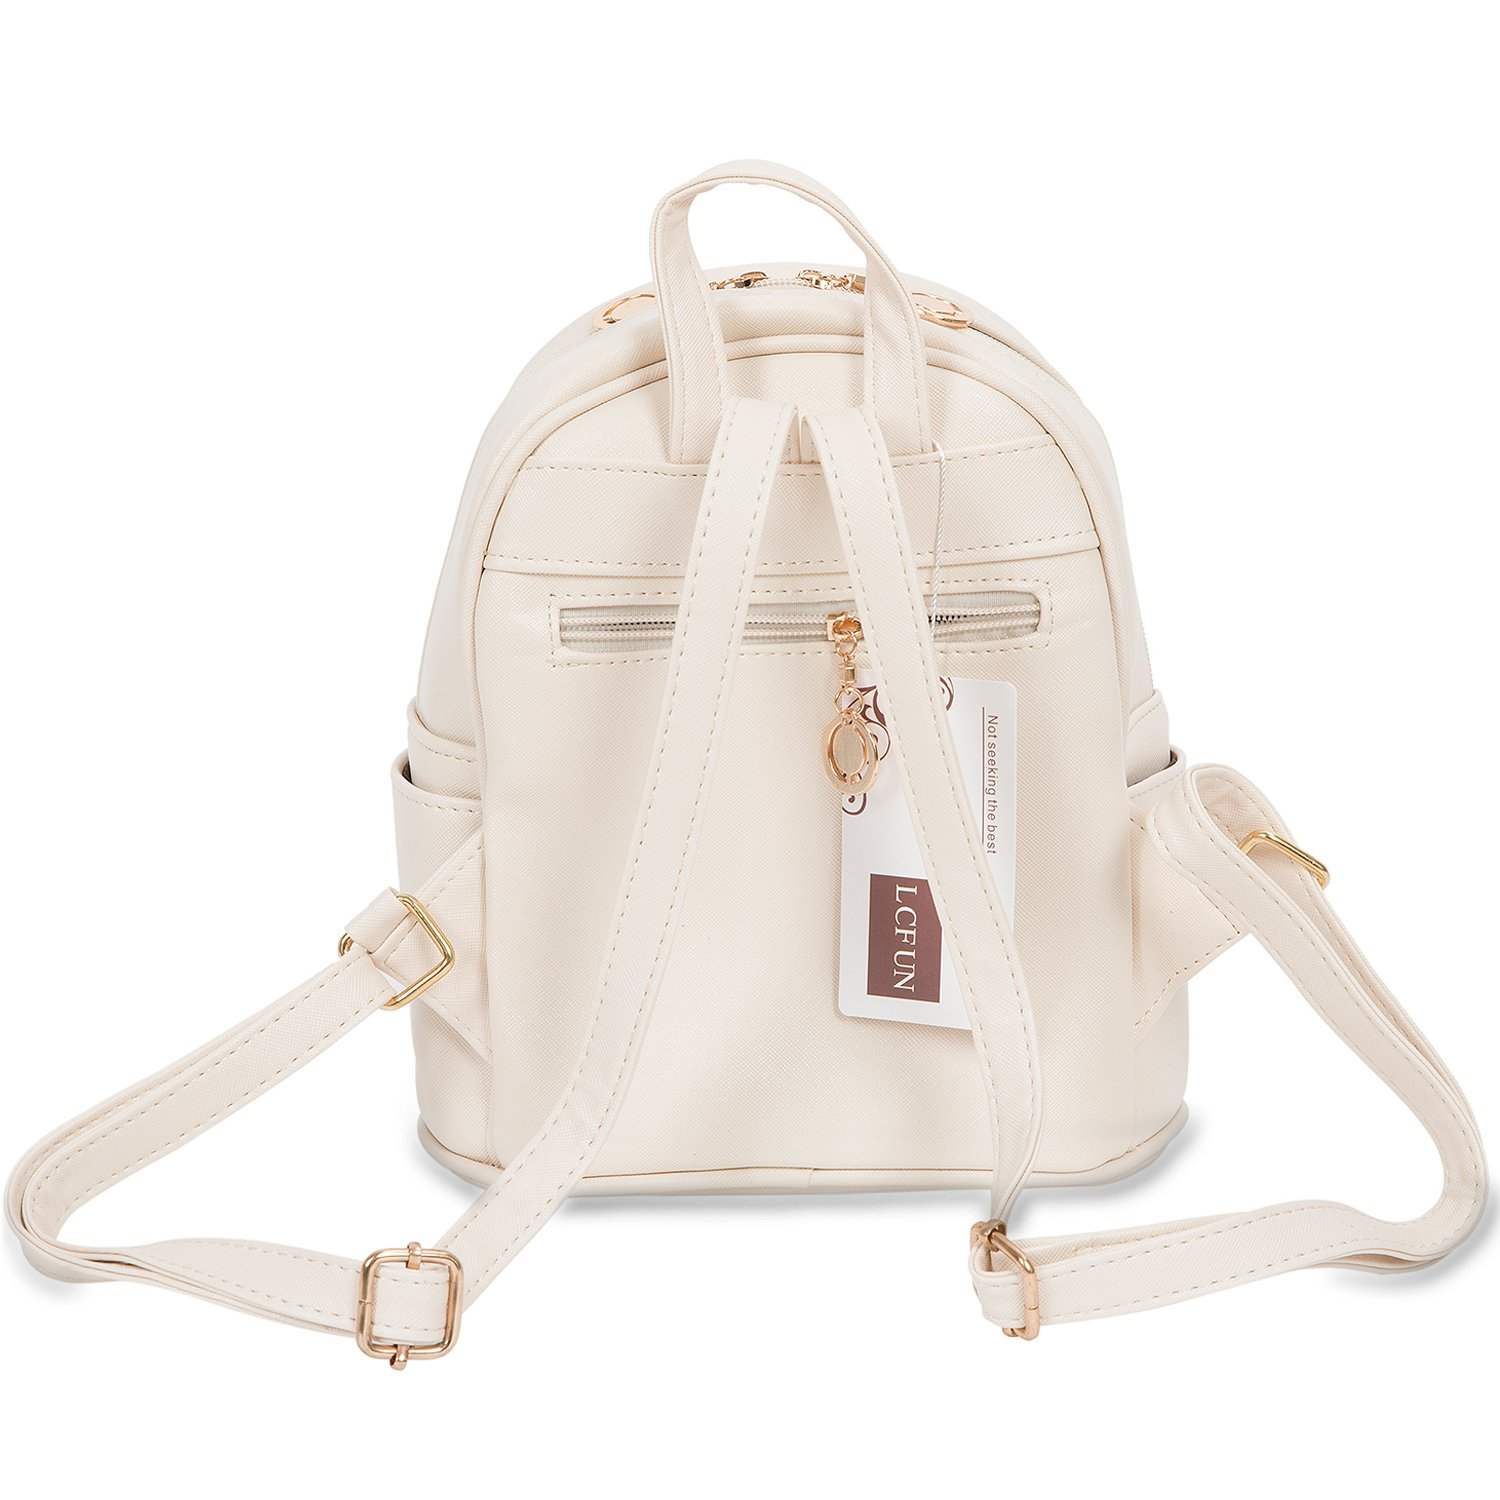 5aeb8588dcd1 Cute Mini Leather Backpack Fashion Small Daypacks Purse for Girls and Women  Beige